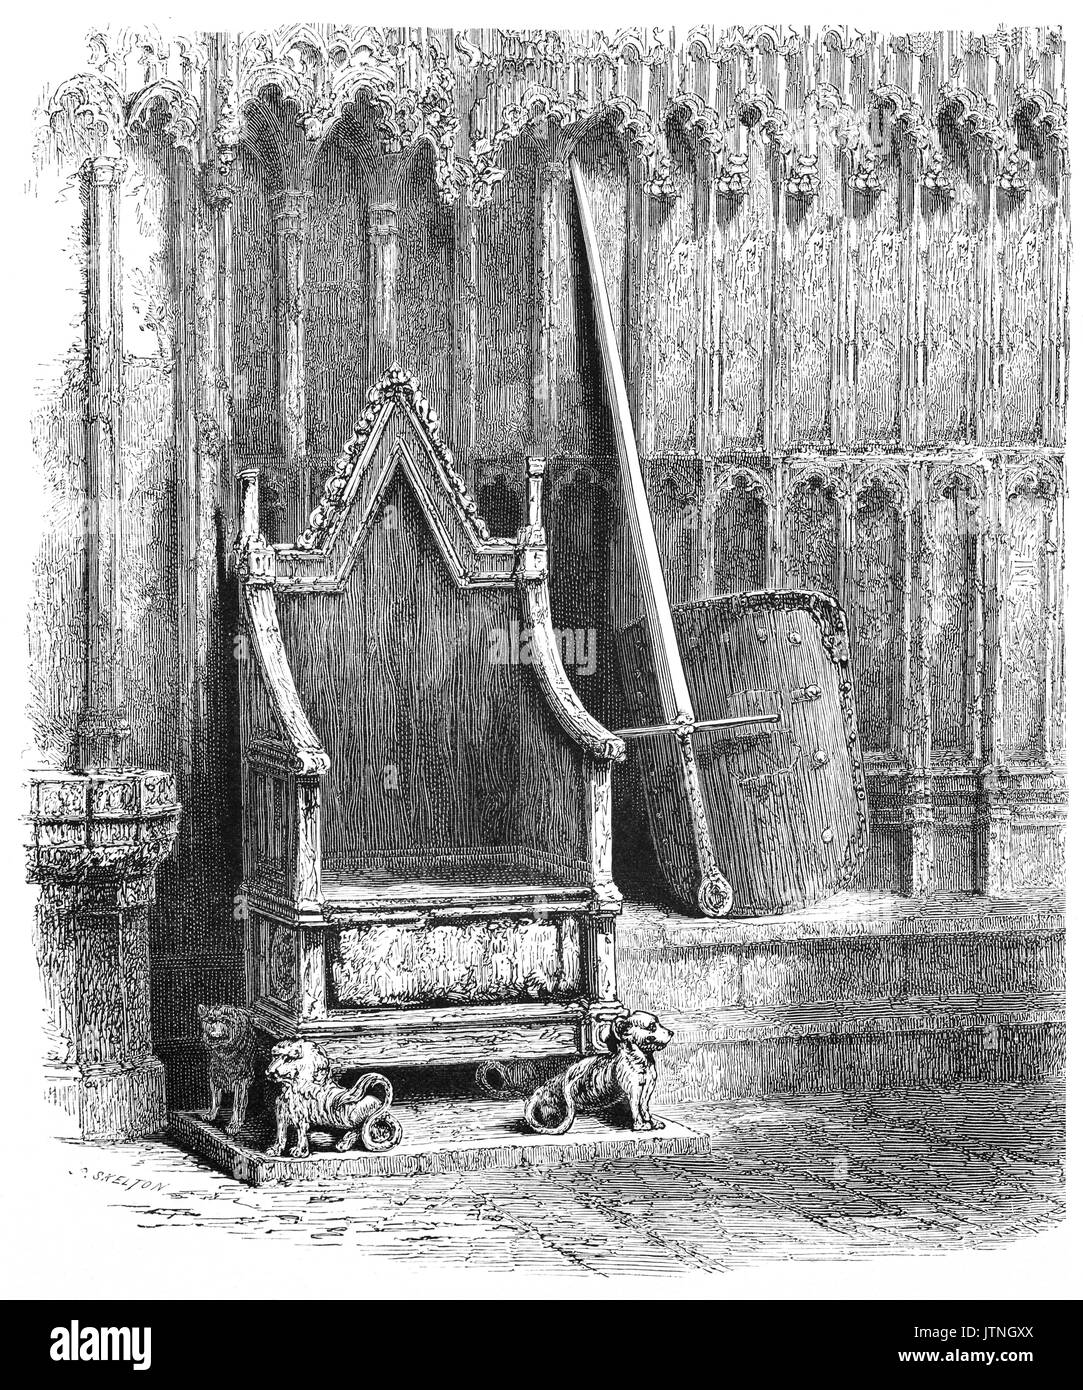 1870: The Coronation Chair, known historically as St Edward's Chair or King Edward's Chair, is an ancient wooden throne on which the British monarch sits when he or she is invested with regalia and crowned at the coronation in London, England. It was commissioned in 1296 by King Edward I to contain the coronation stone of Scotland – known as the Stone of Destiny – which had been captured from the Scots who kept it at Scone Abbey in Perthshire, Scotland. - Stock Image